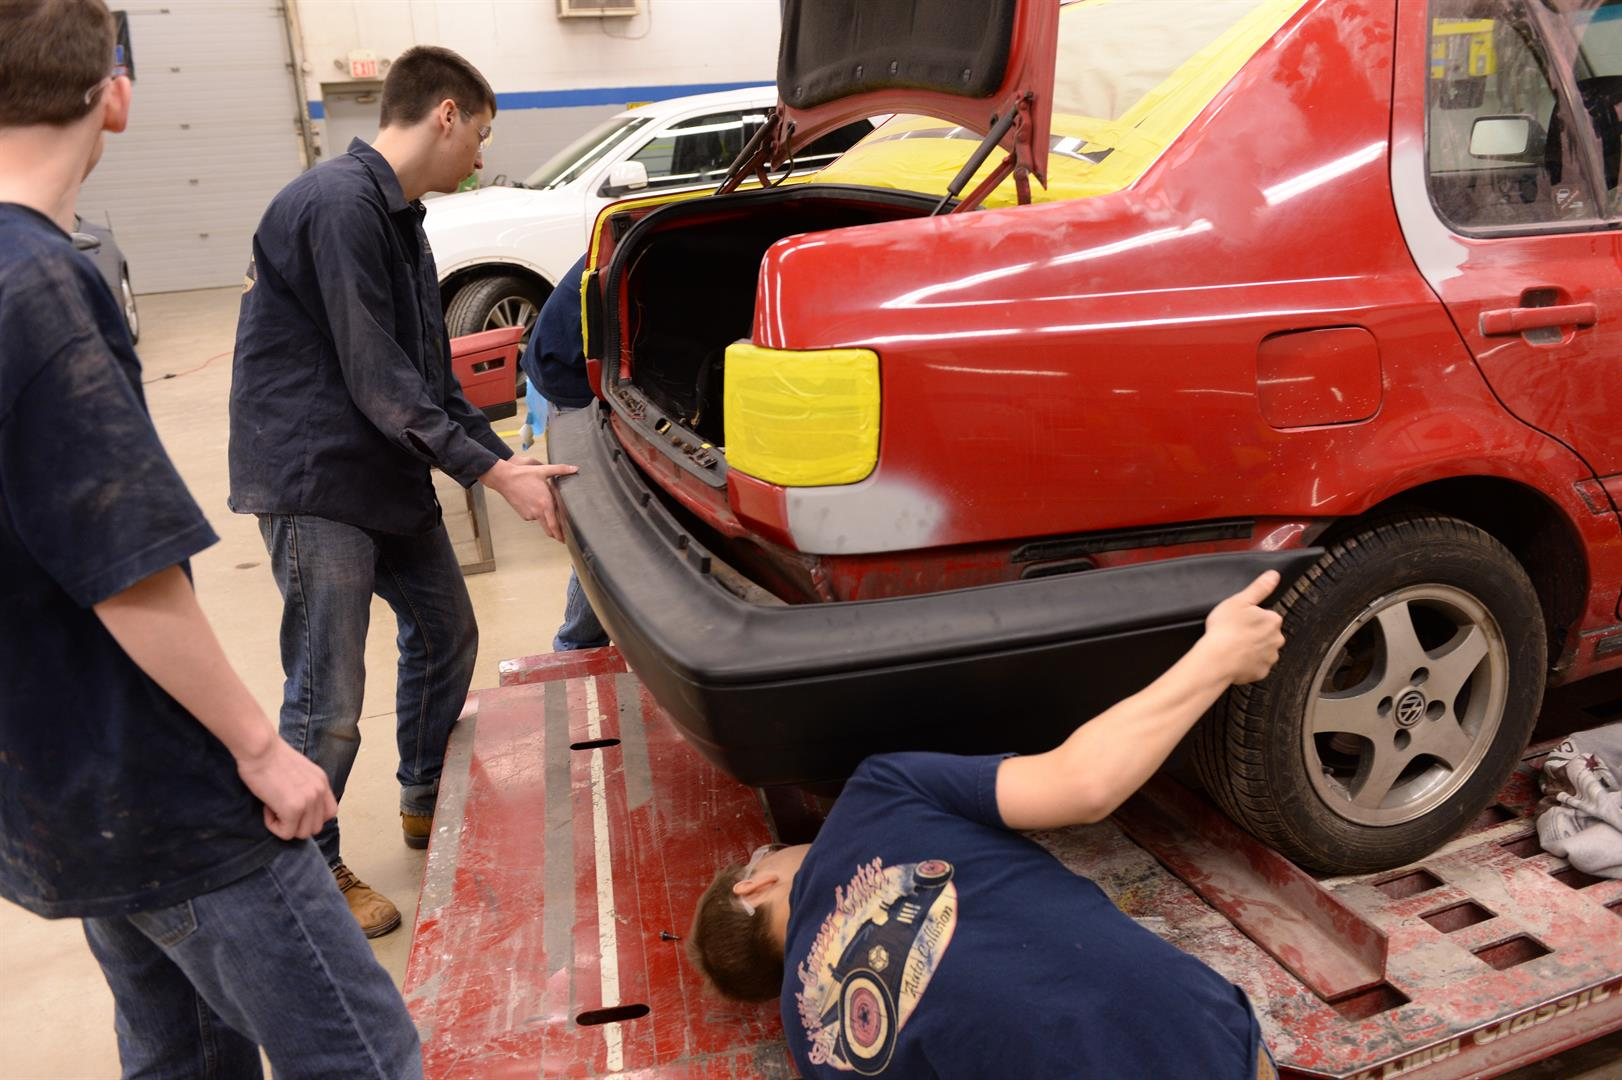 A group of students put a new bumper on a vehicle.